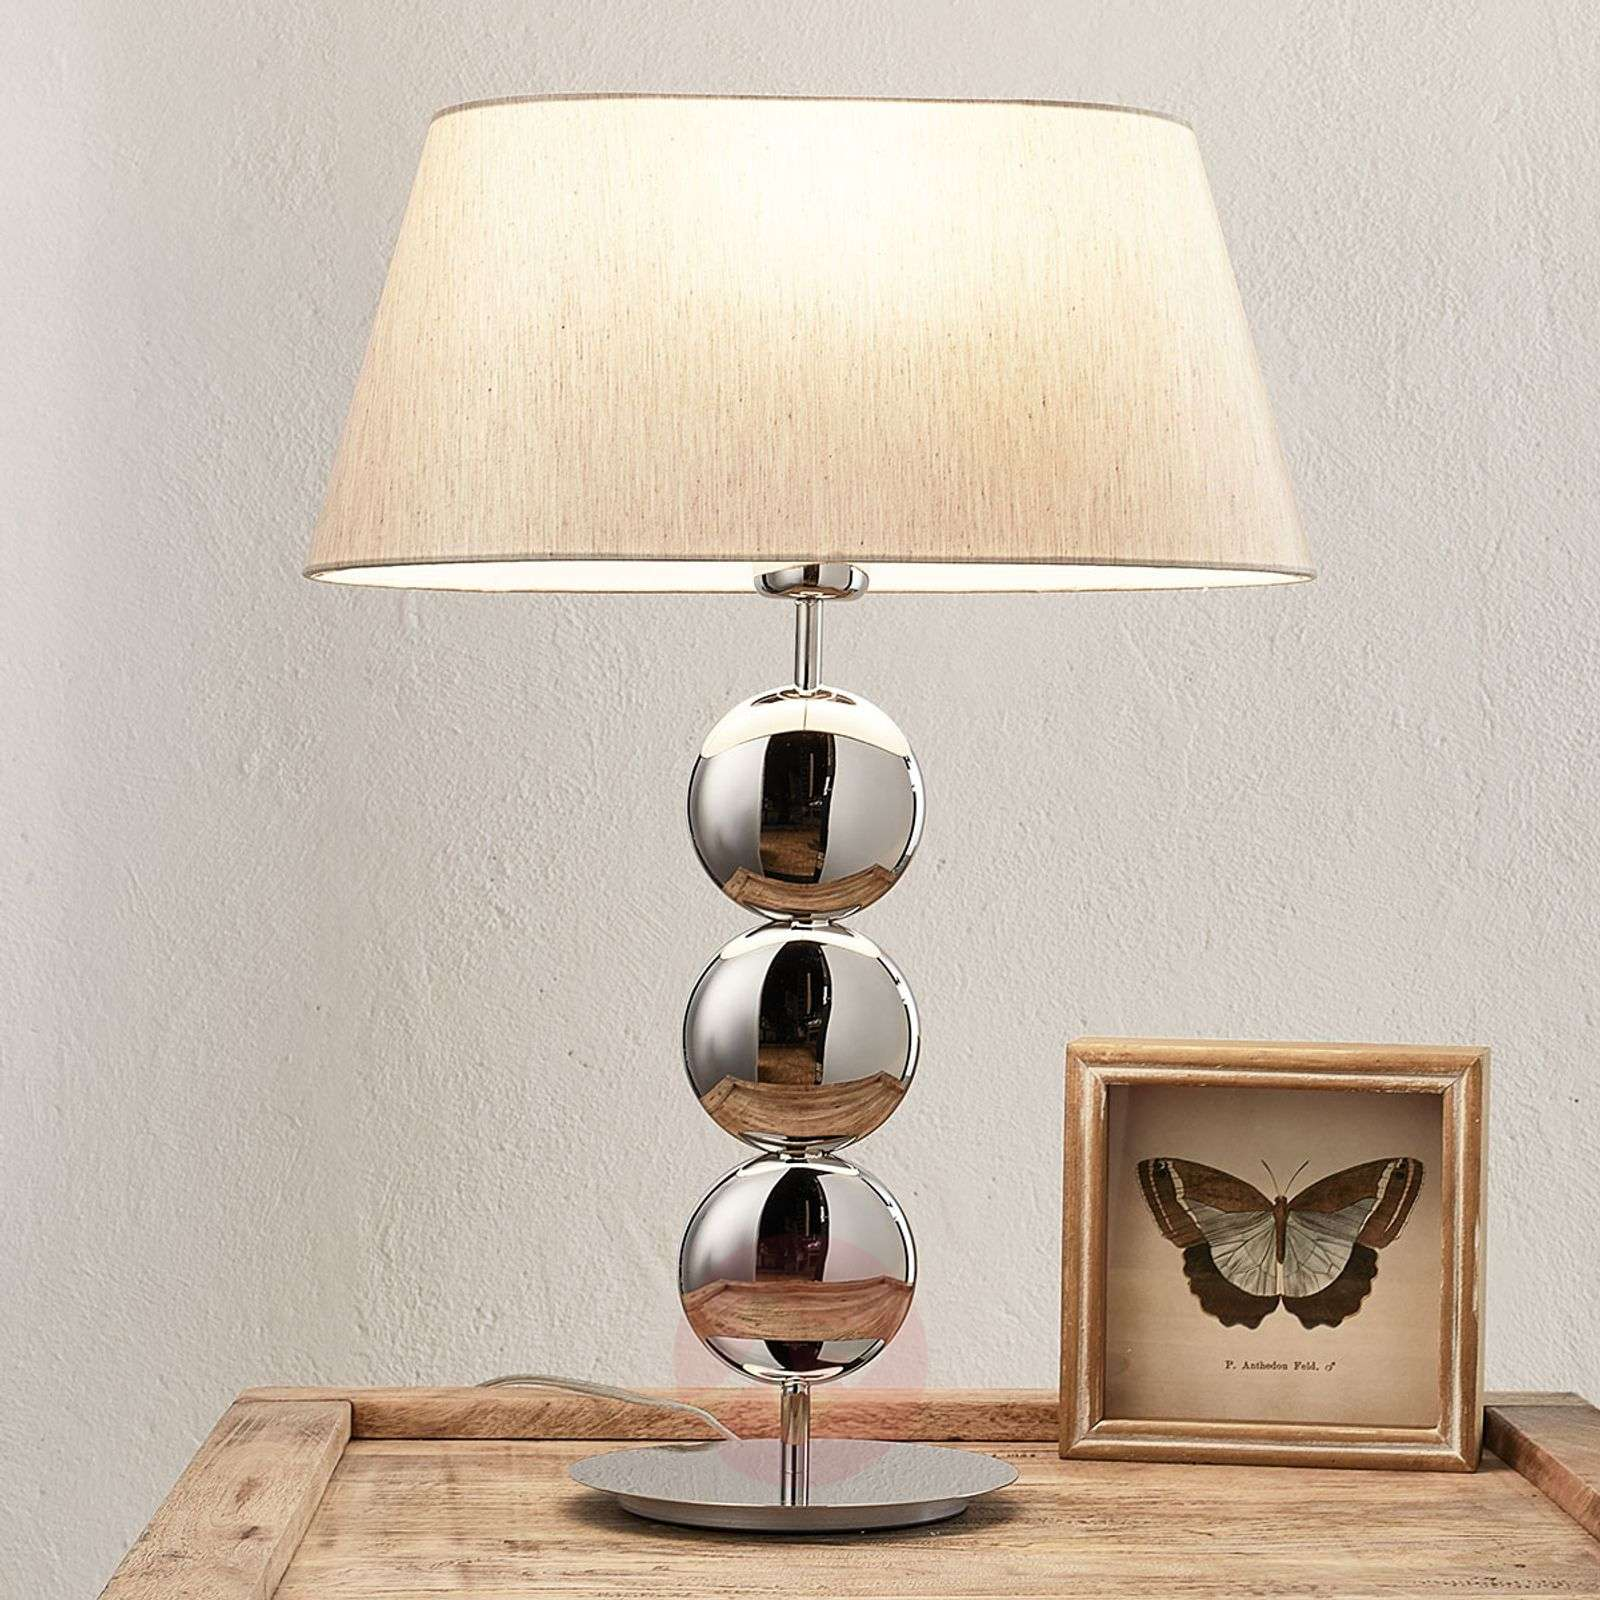 Stylish table lamp sofia with silver base lights stylish table lamp sofia with silver base 8507860 01 mozeypictures Choice Image